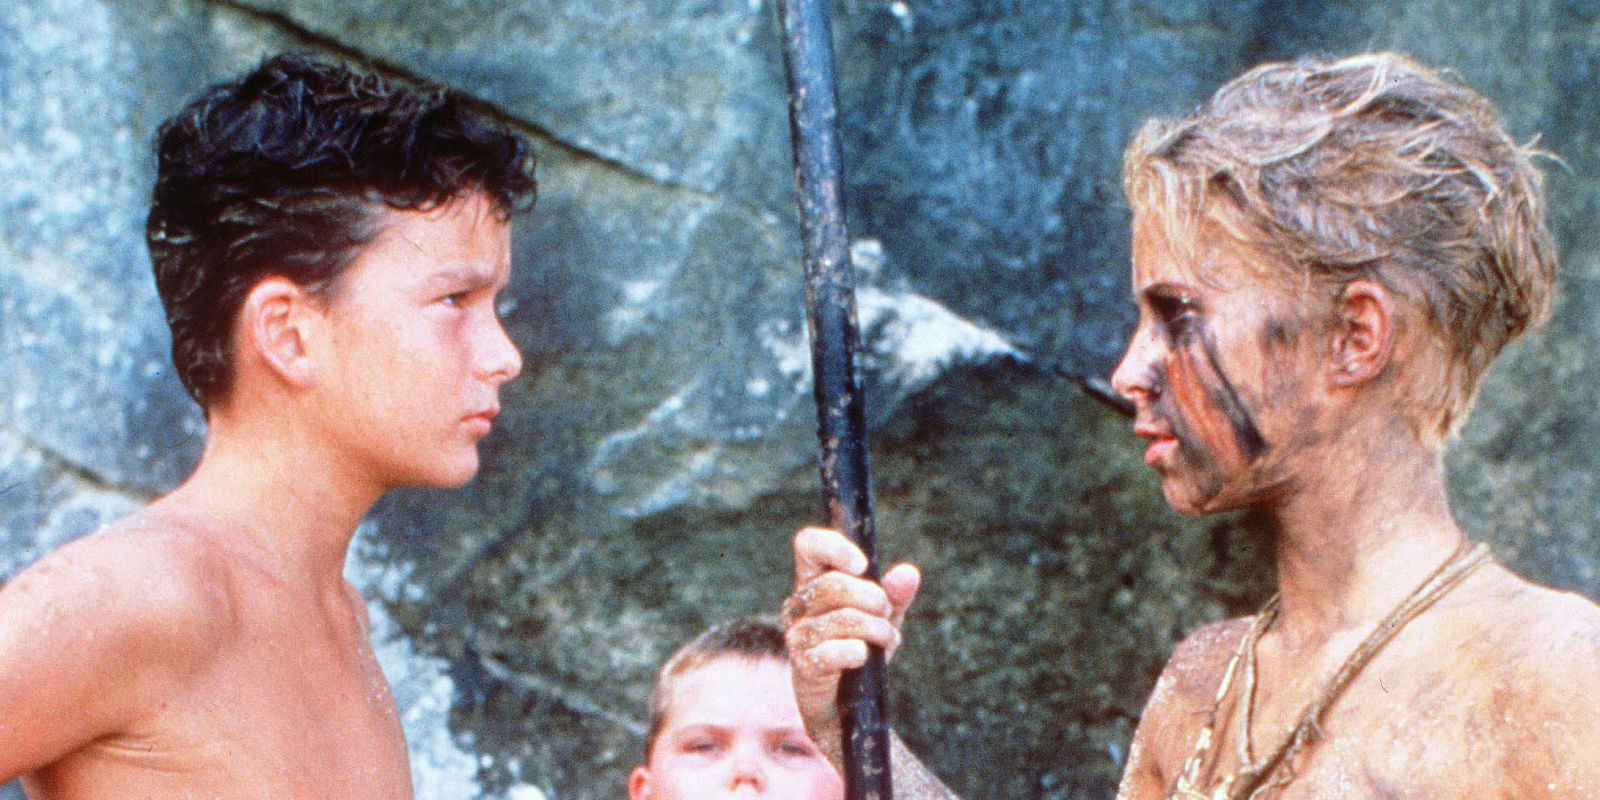 all female lord of the flies remake sparks criticism